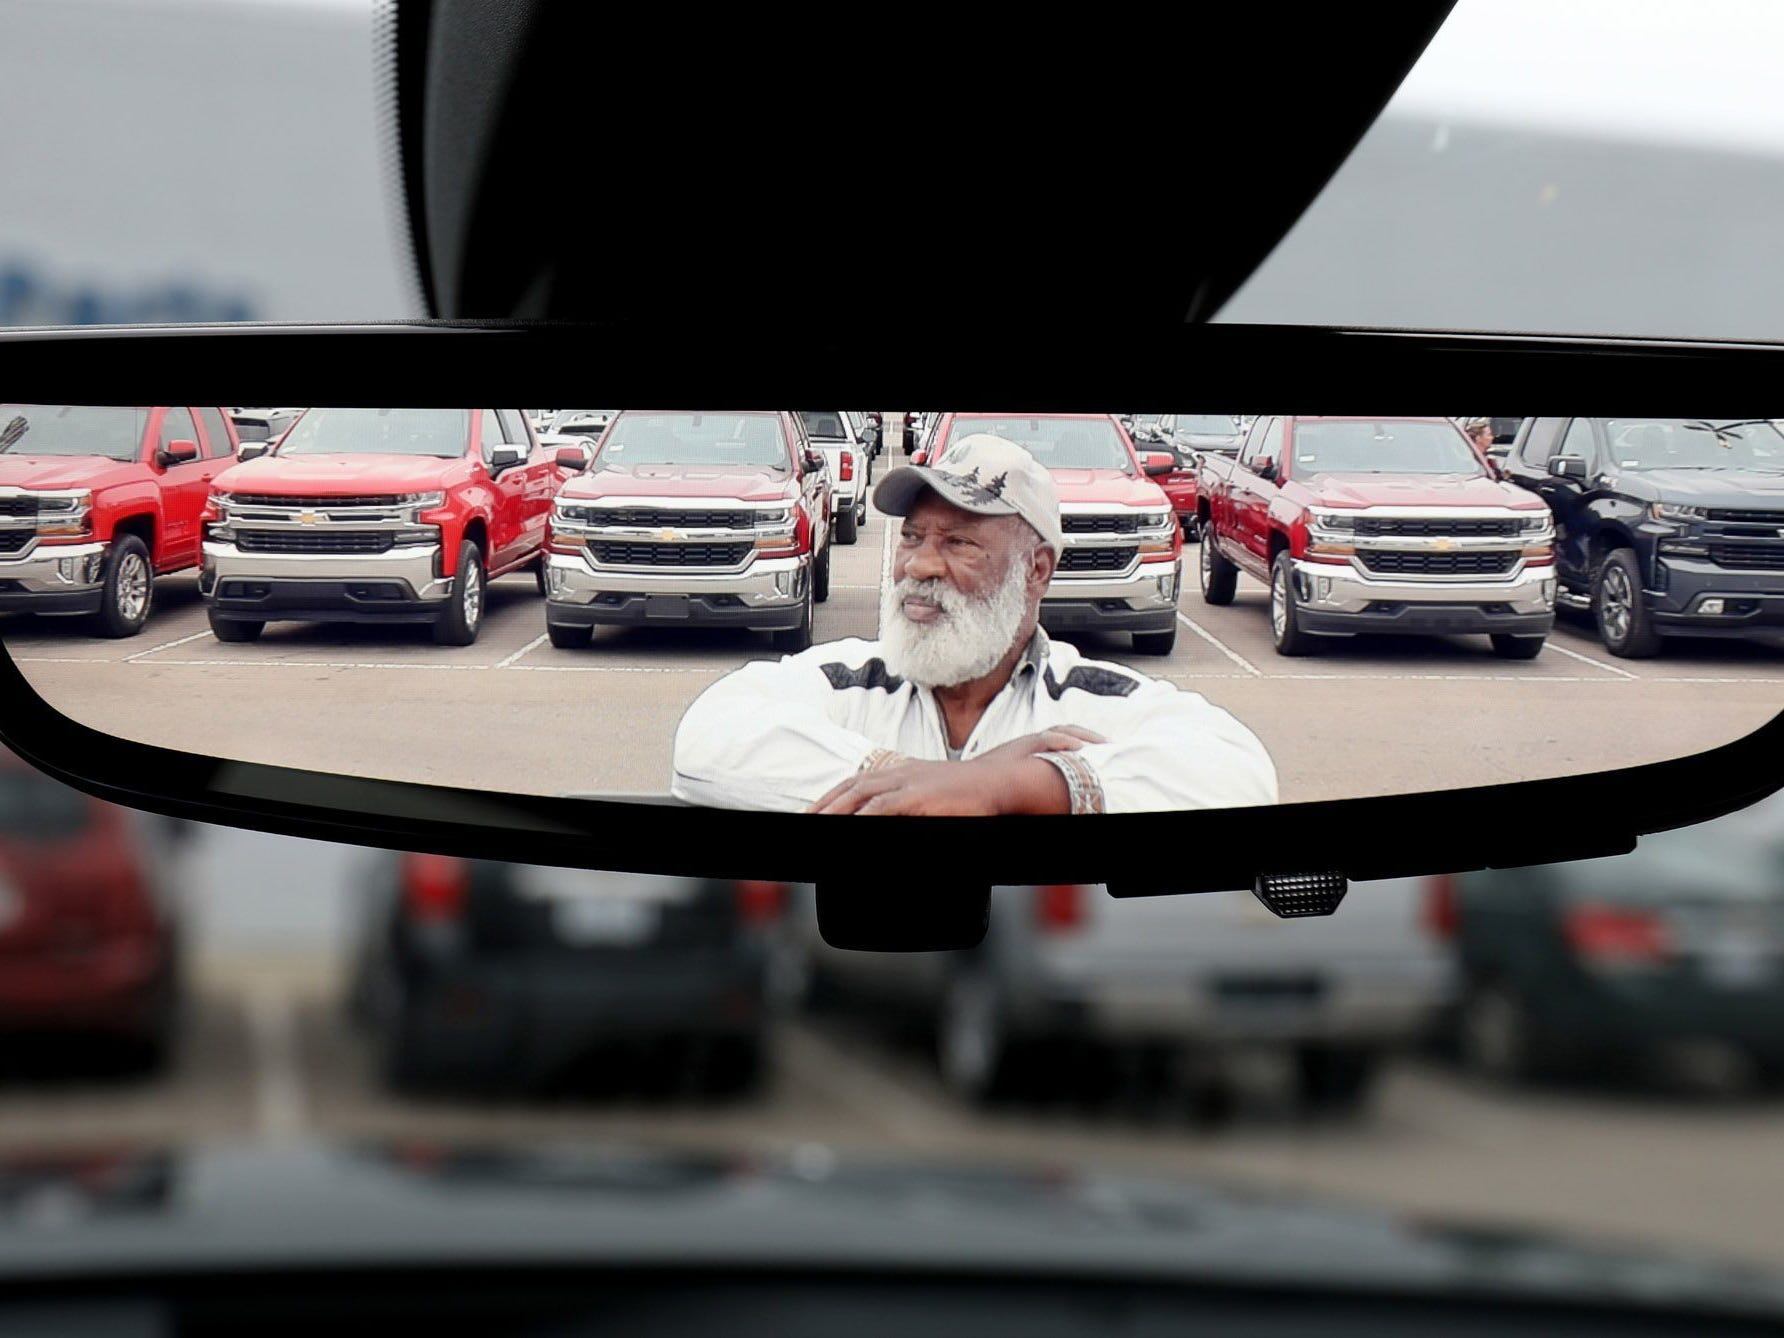 With 2018 and 2019 Chevrolet Silverados behind him, Ernest Johnson, 80 of Pontiac, is reflected in a mirror of his 2019 Chevrolet Silverado that he bought at George Matick Chevrolet in Redford Township on Thursday, September 27, 2018.